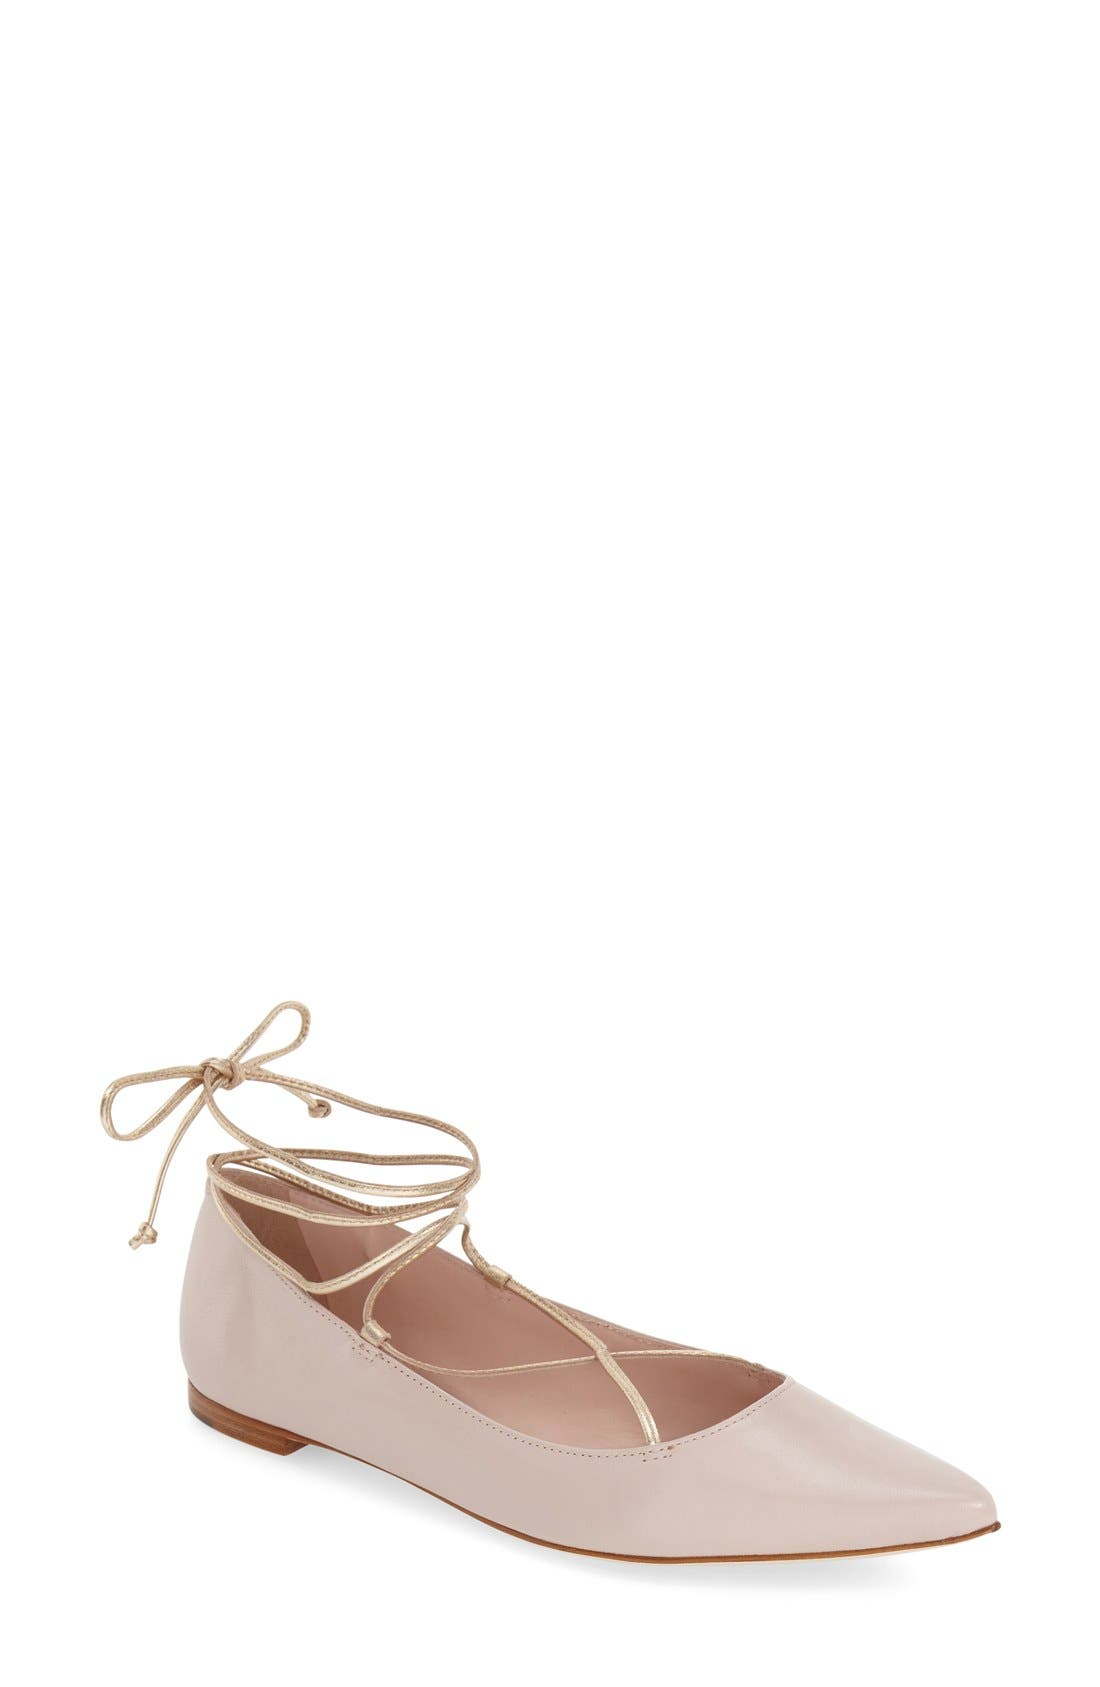 Main Image - kate spade new york 'genie' pointy toe lace up flat (Women)